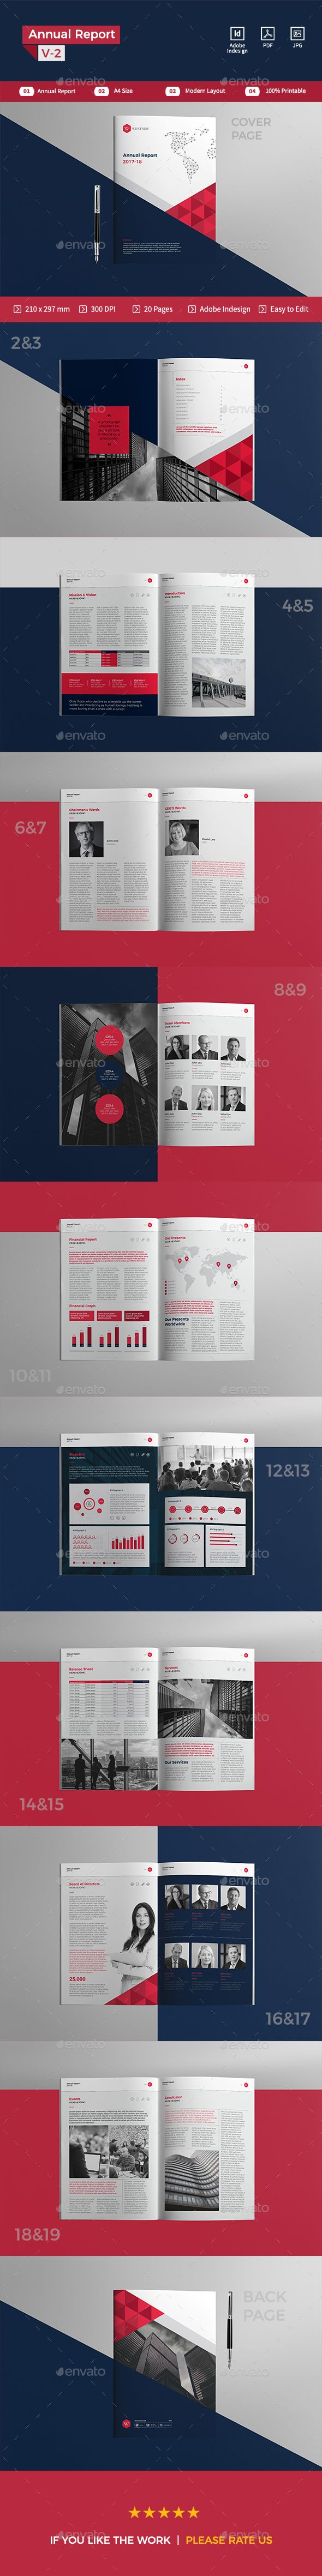 Annual Report — InDesign INDD #clean #agency • Download ➝ https://graphicriver.net/item/annual-report/19502634?ref=pxcr